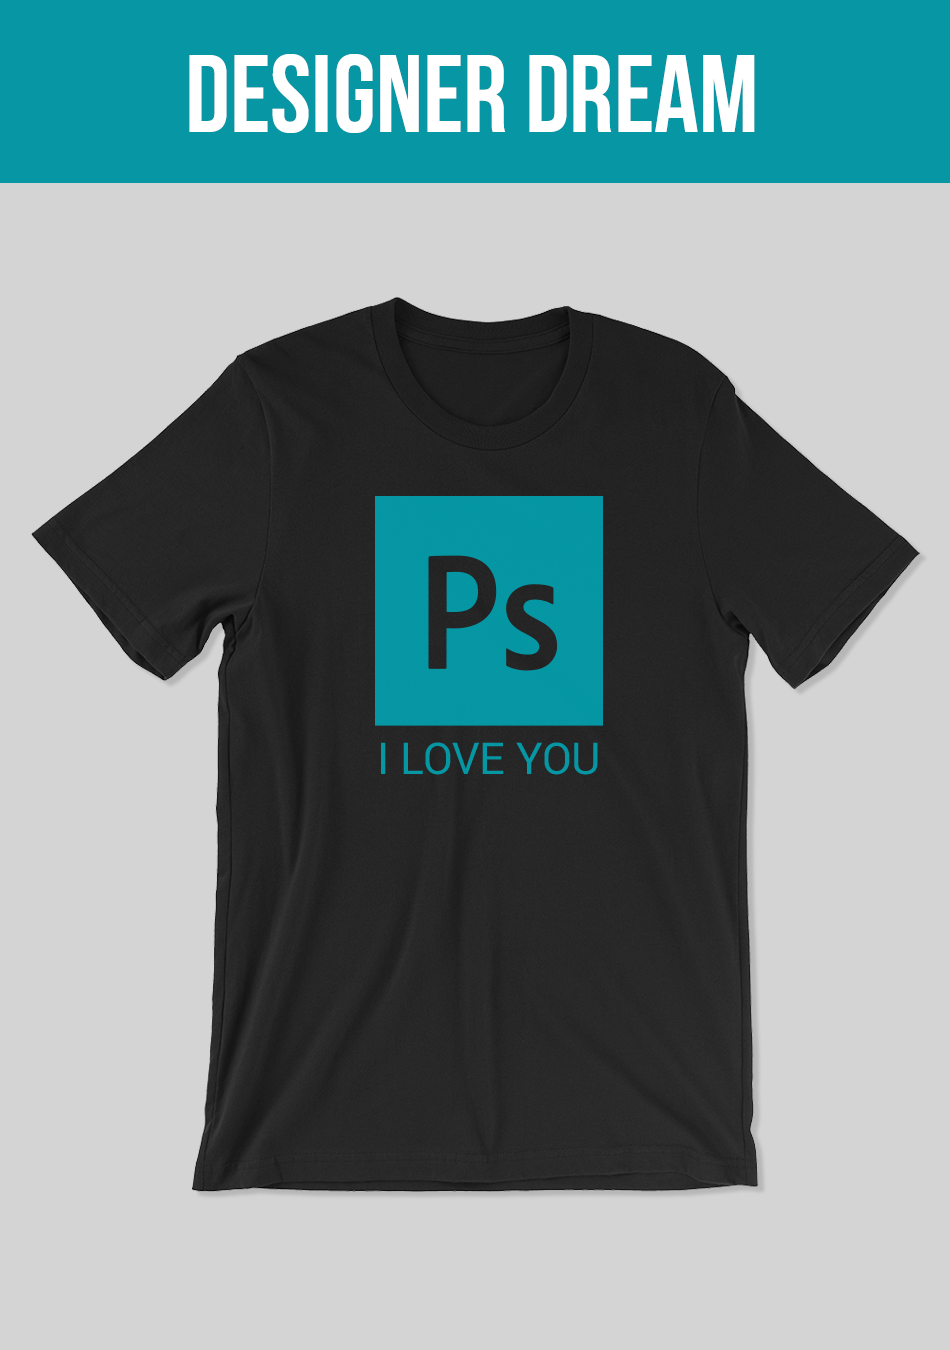 f859c8c3 How romantic is graphic designer's and Photoshop's love, isn't it? If  you're a true Photoshop lover so you MUST wear this epic, cute and funny t- shirt!